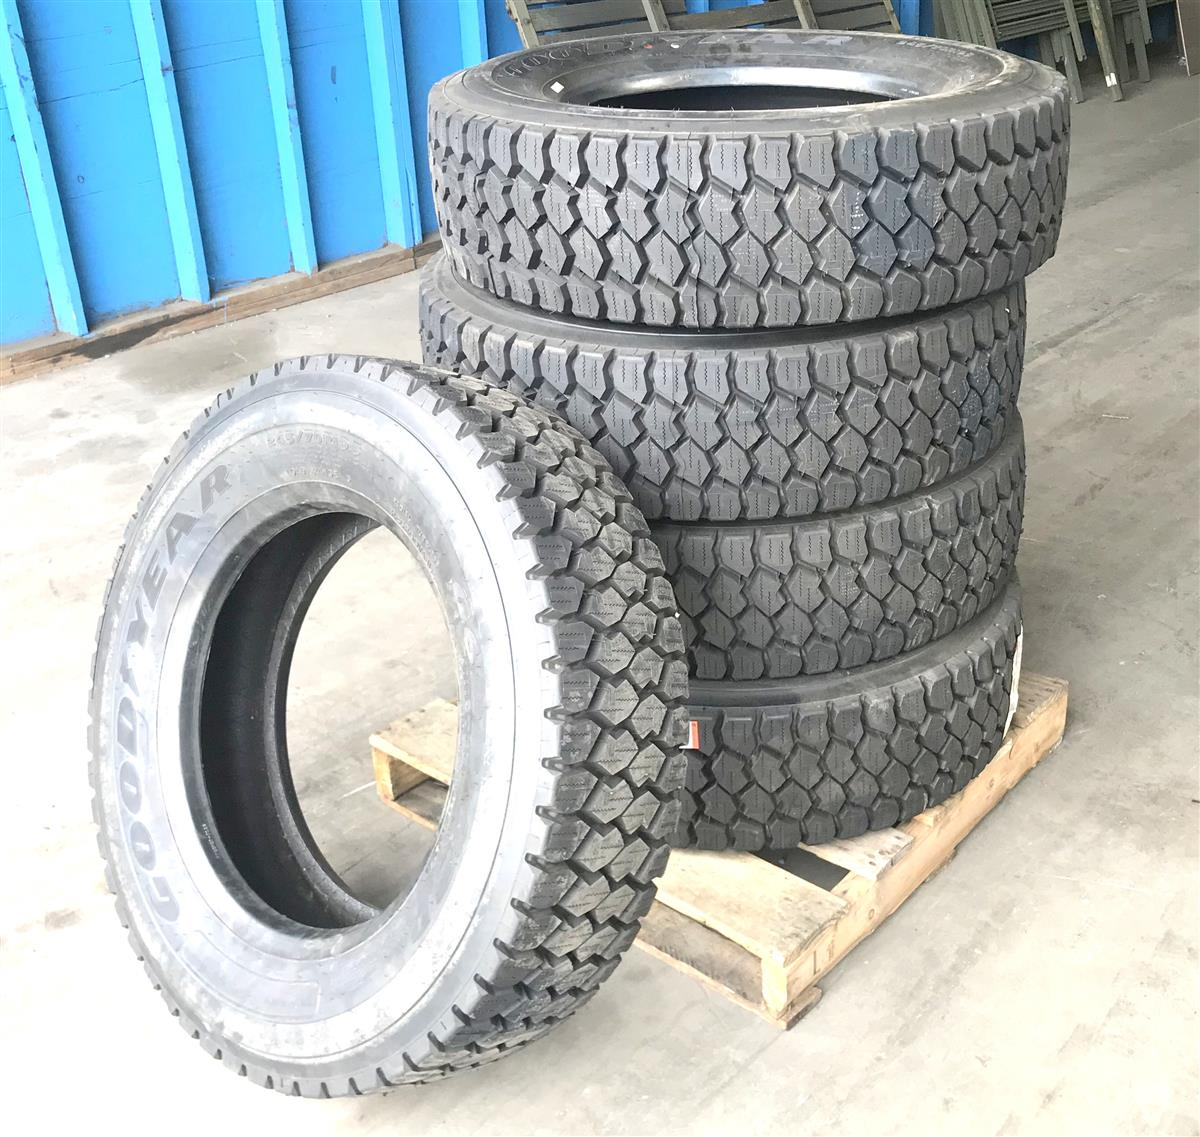 TI-371 | TI-371  Goodyear G622 RSD 24570R19.5 (5 Tire Lot Sale)  (10).JPG